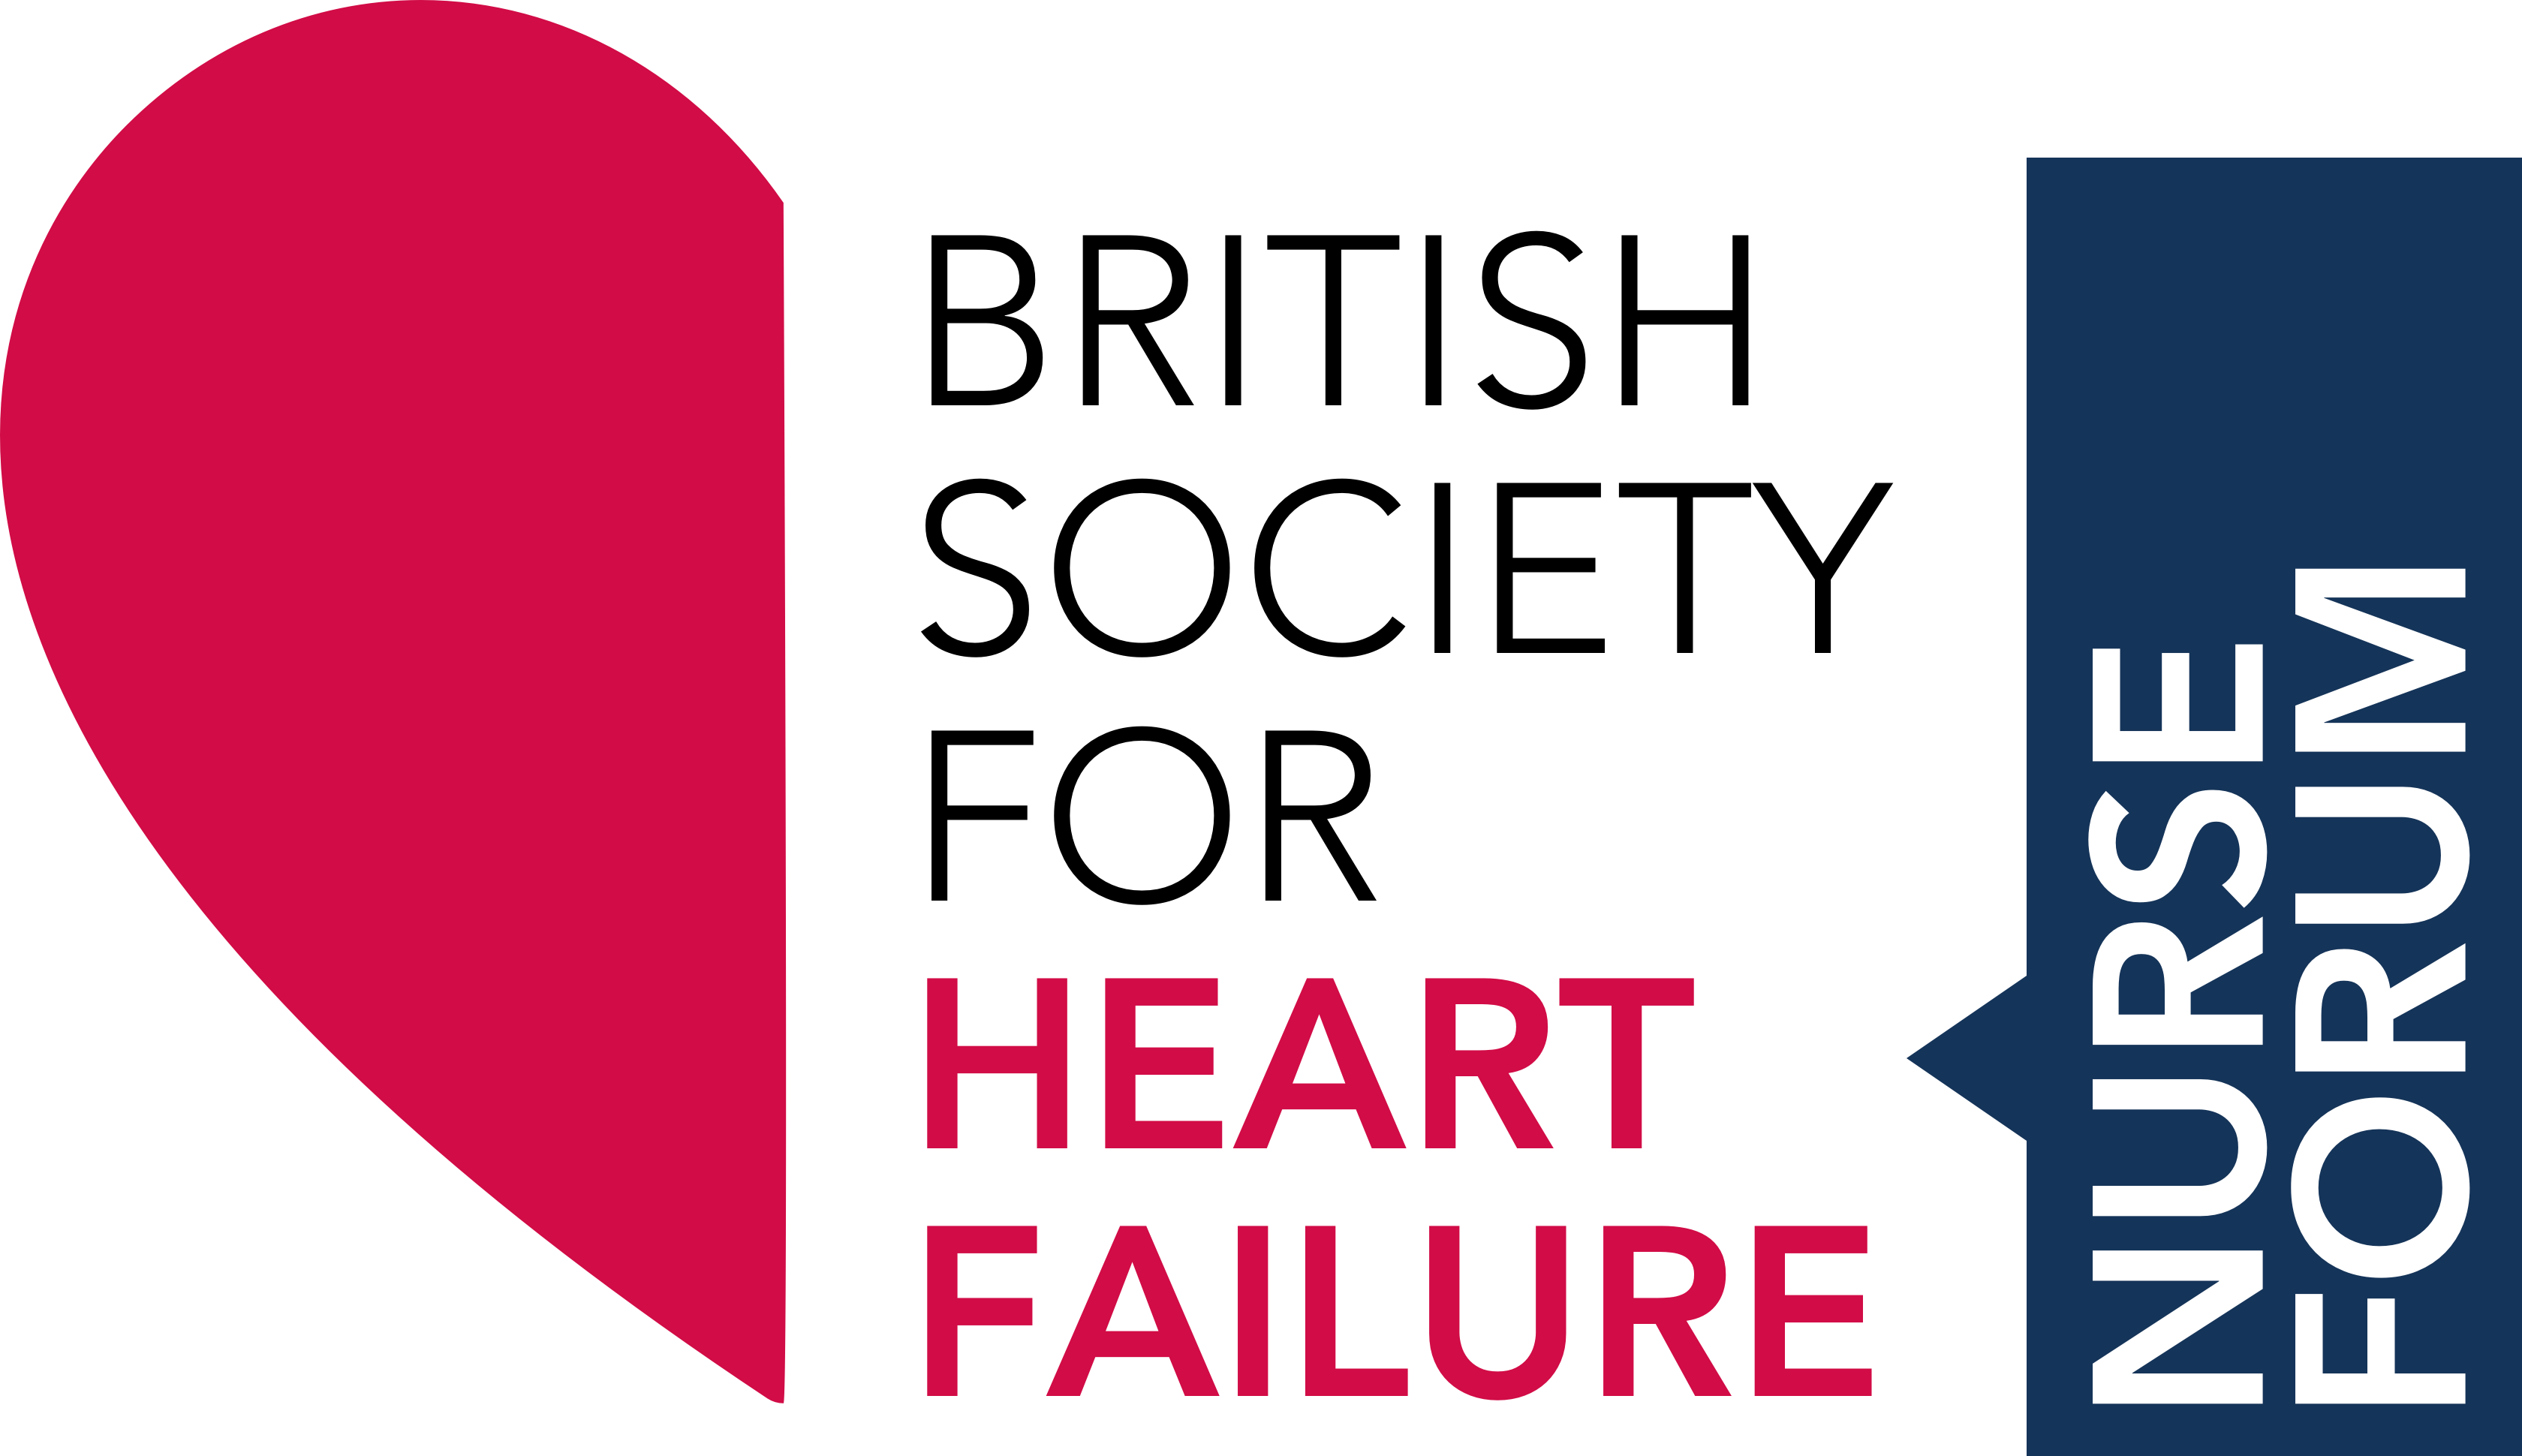 British Society For Heart Failure